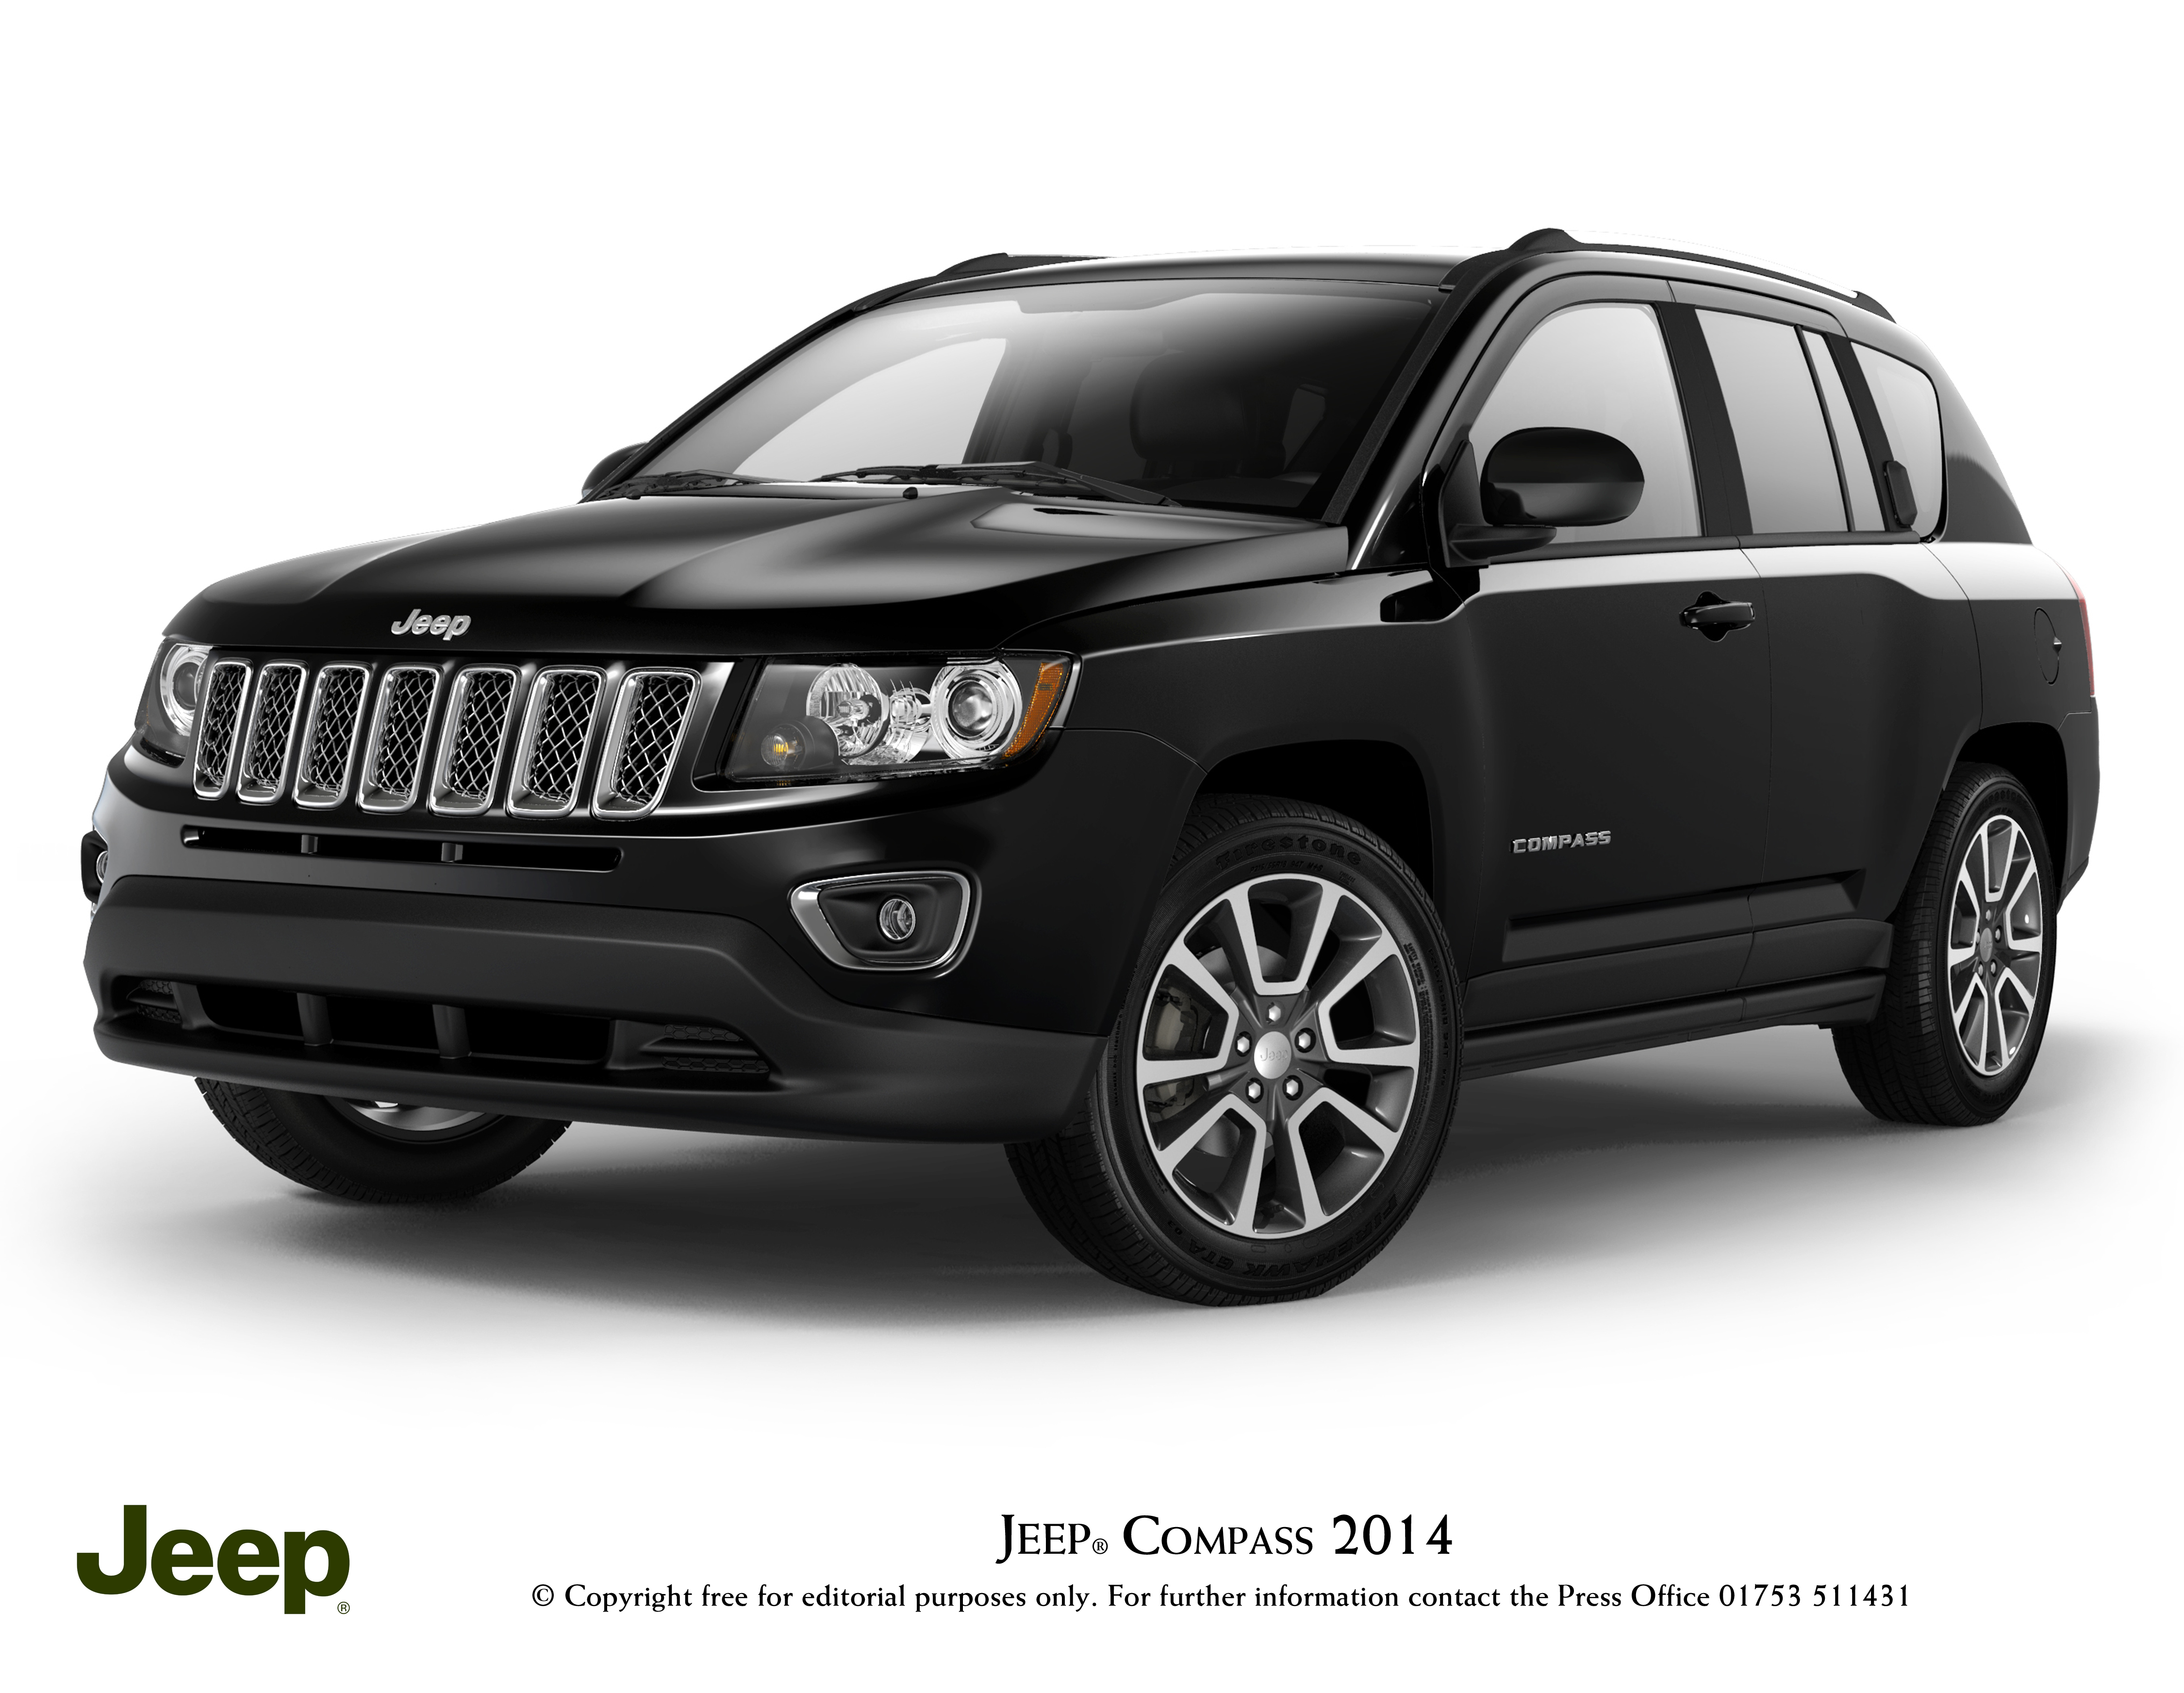 Johnston Chrysler Fiat >> JEEP® COMPASS: THE REFRESHED URBAN COMPACT SUV OF THE JEEP BRAND ARRIVES IN UK SHOWROOMS - Press ...